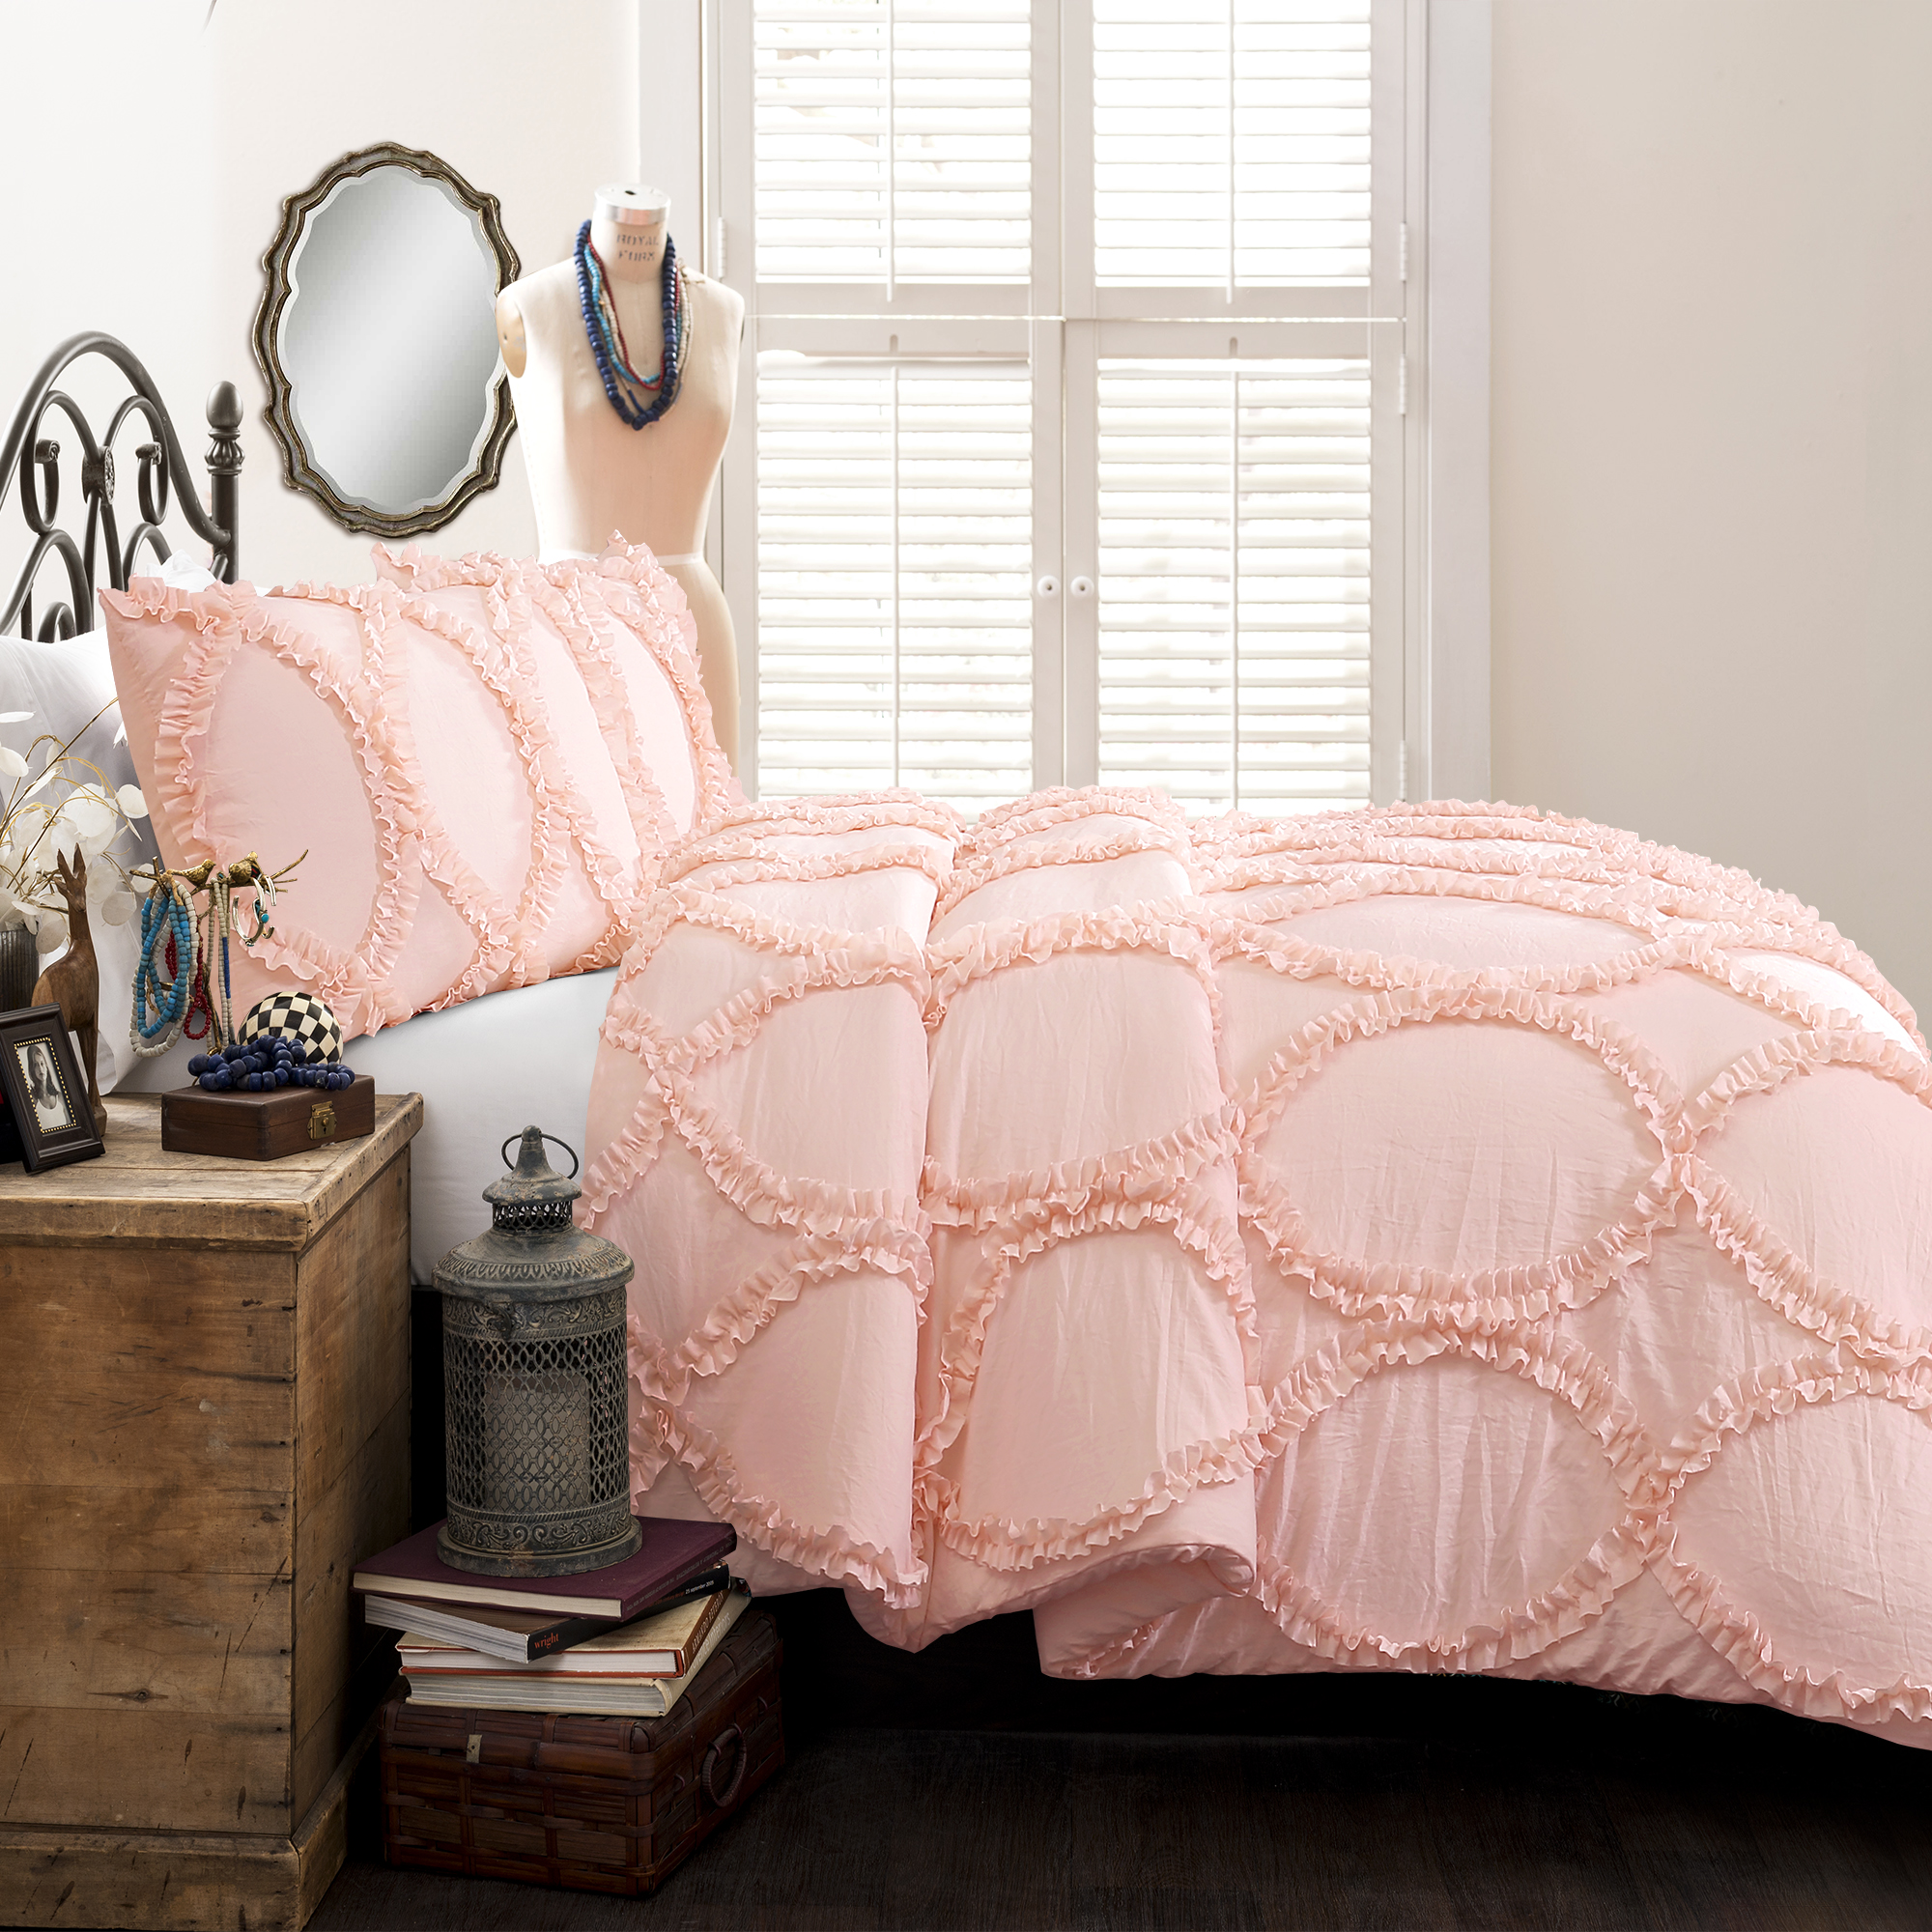 Avon Comforter Pink 2Pc Set Twin